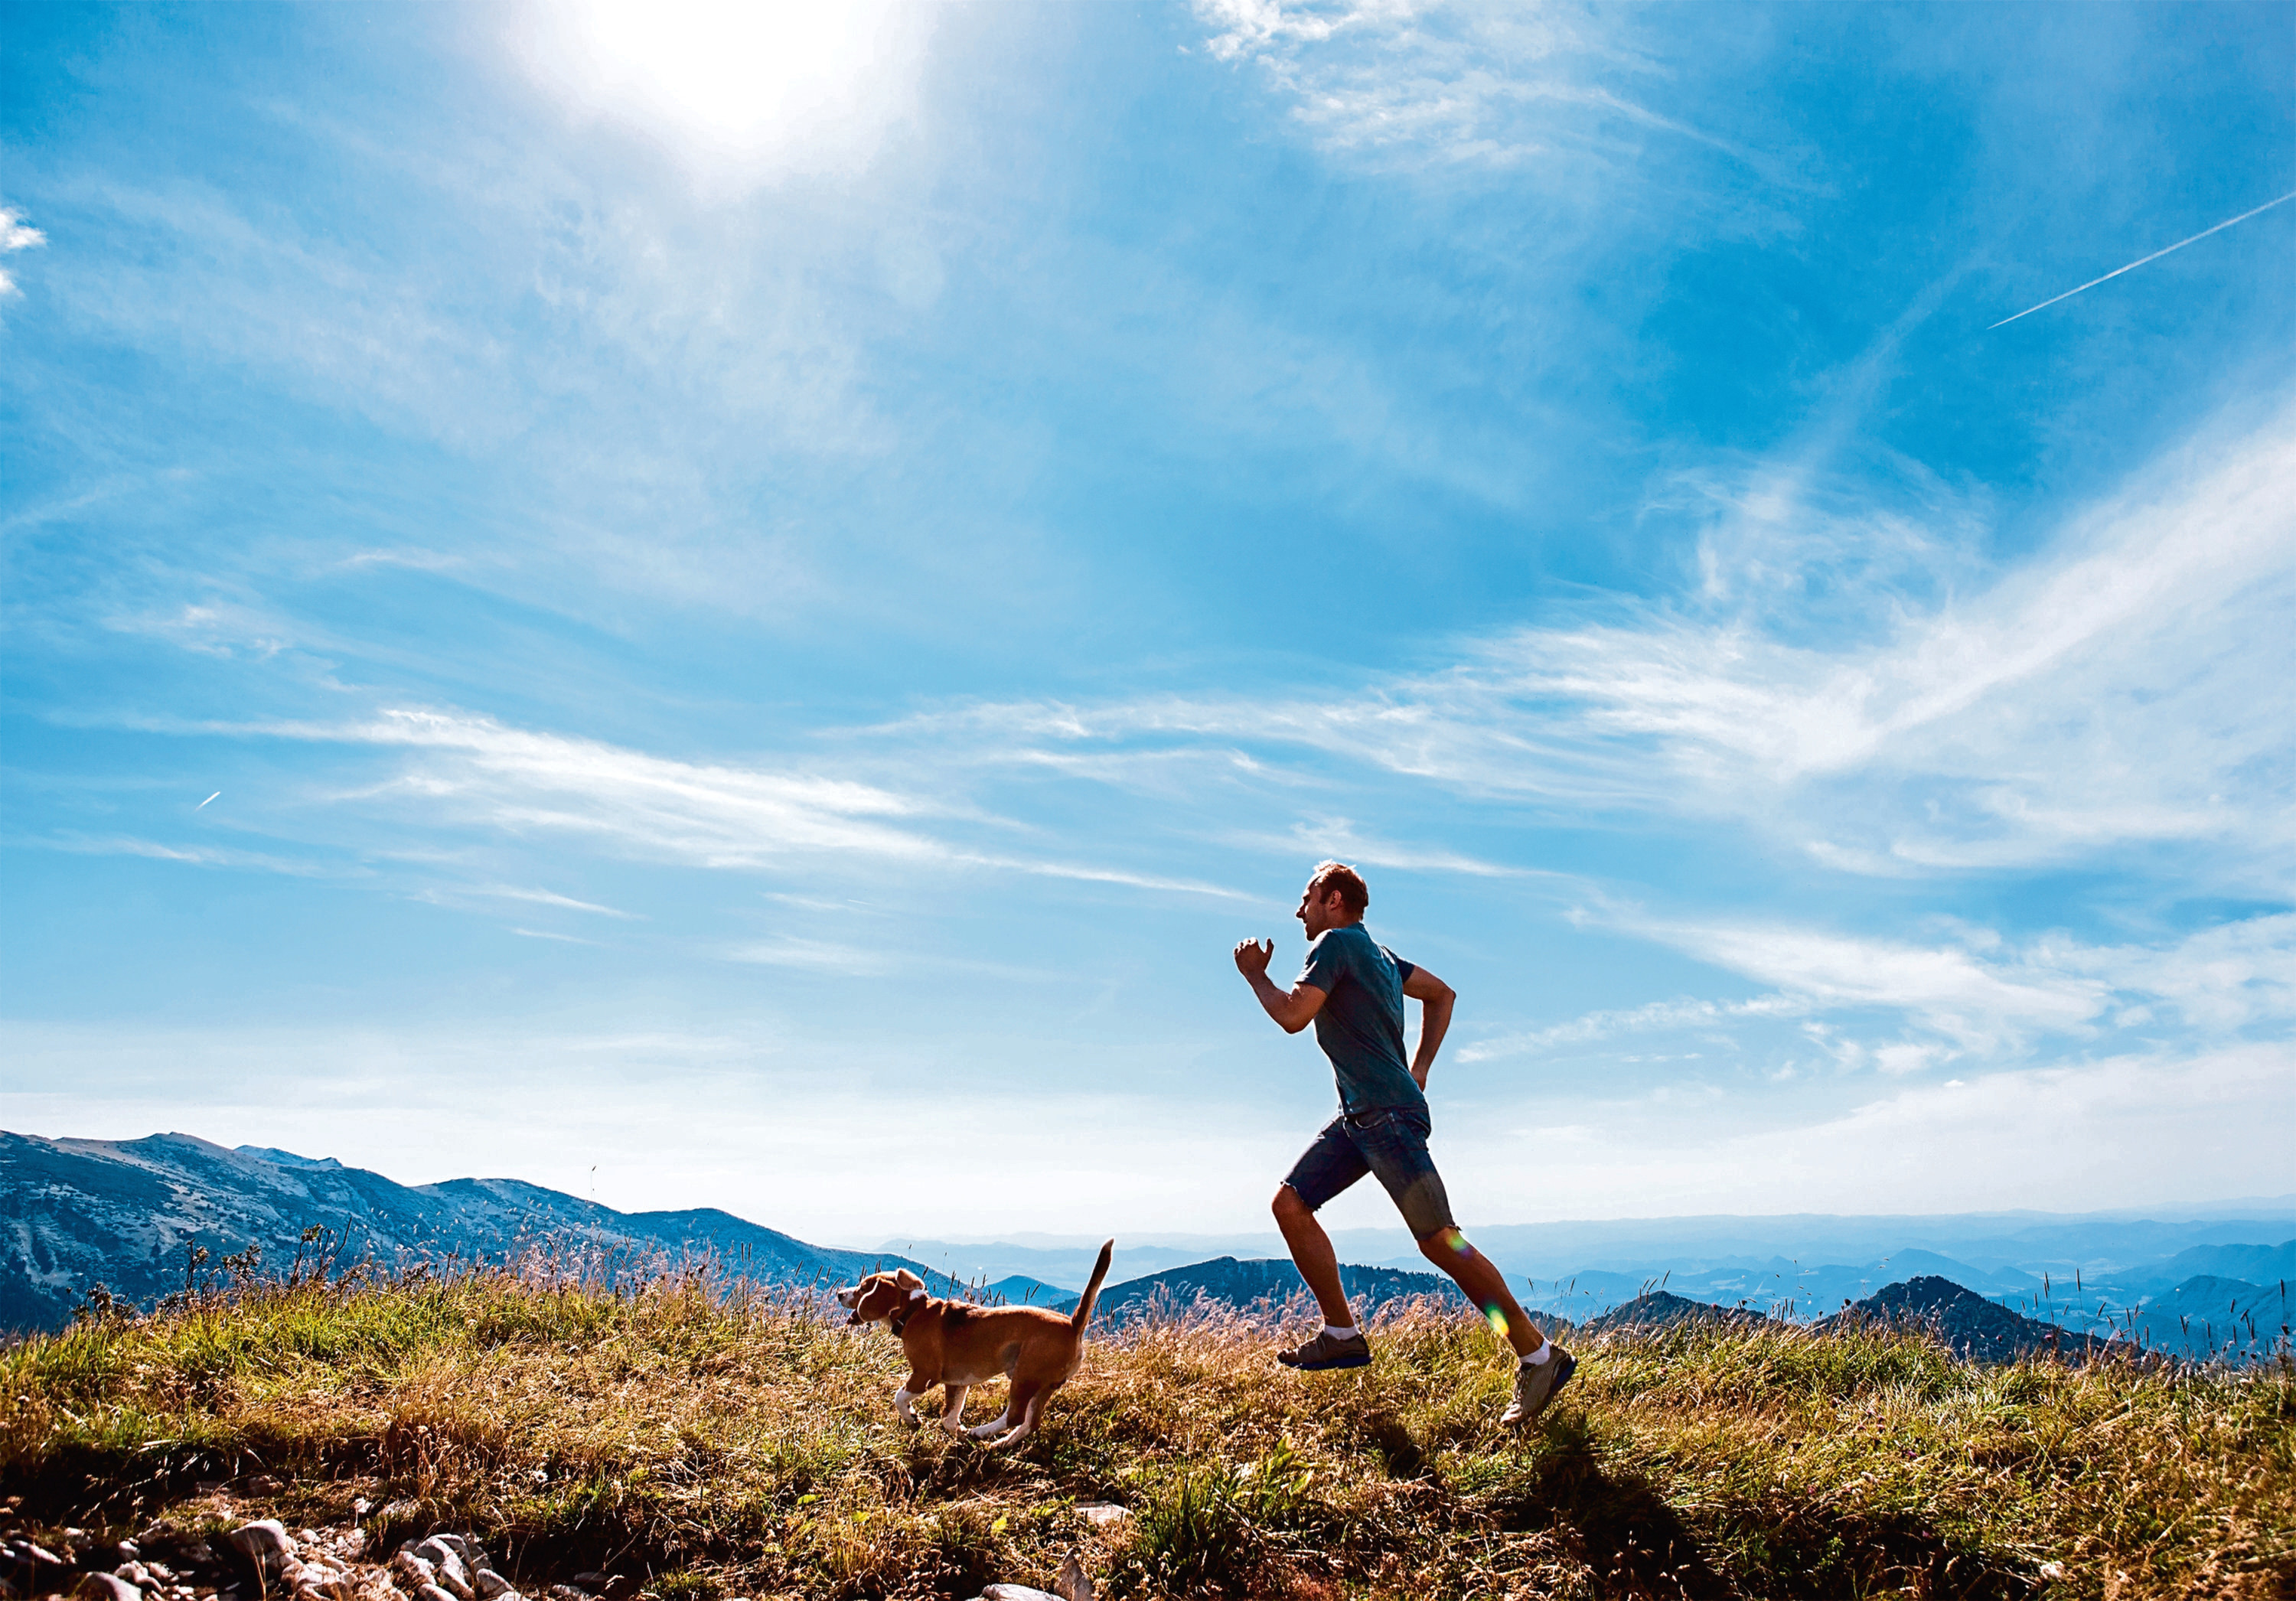 One man, with his dog, experiences the highs of hill running